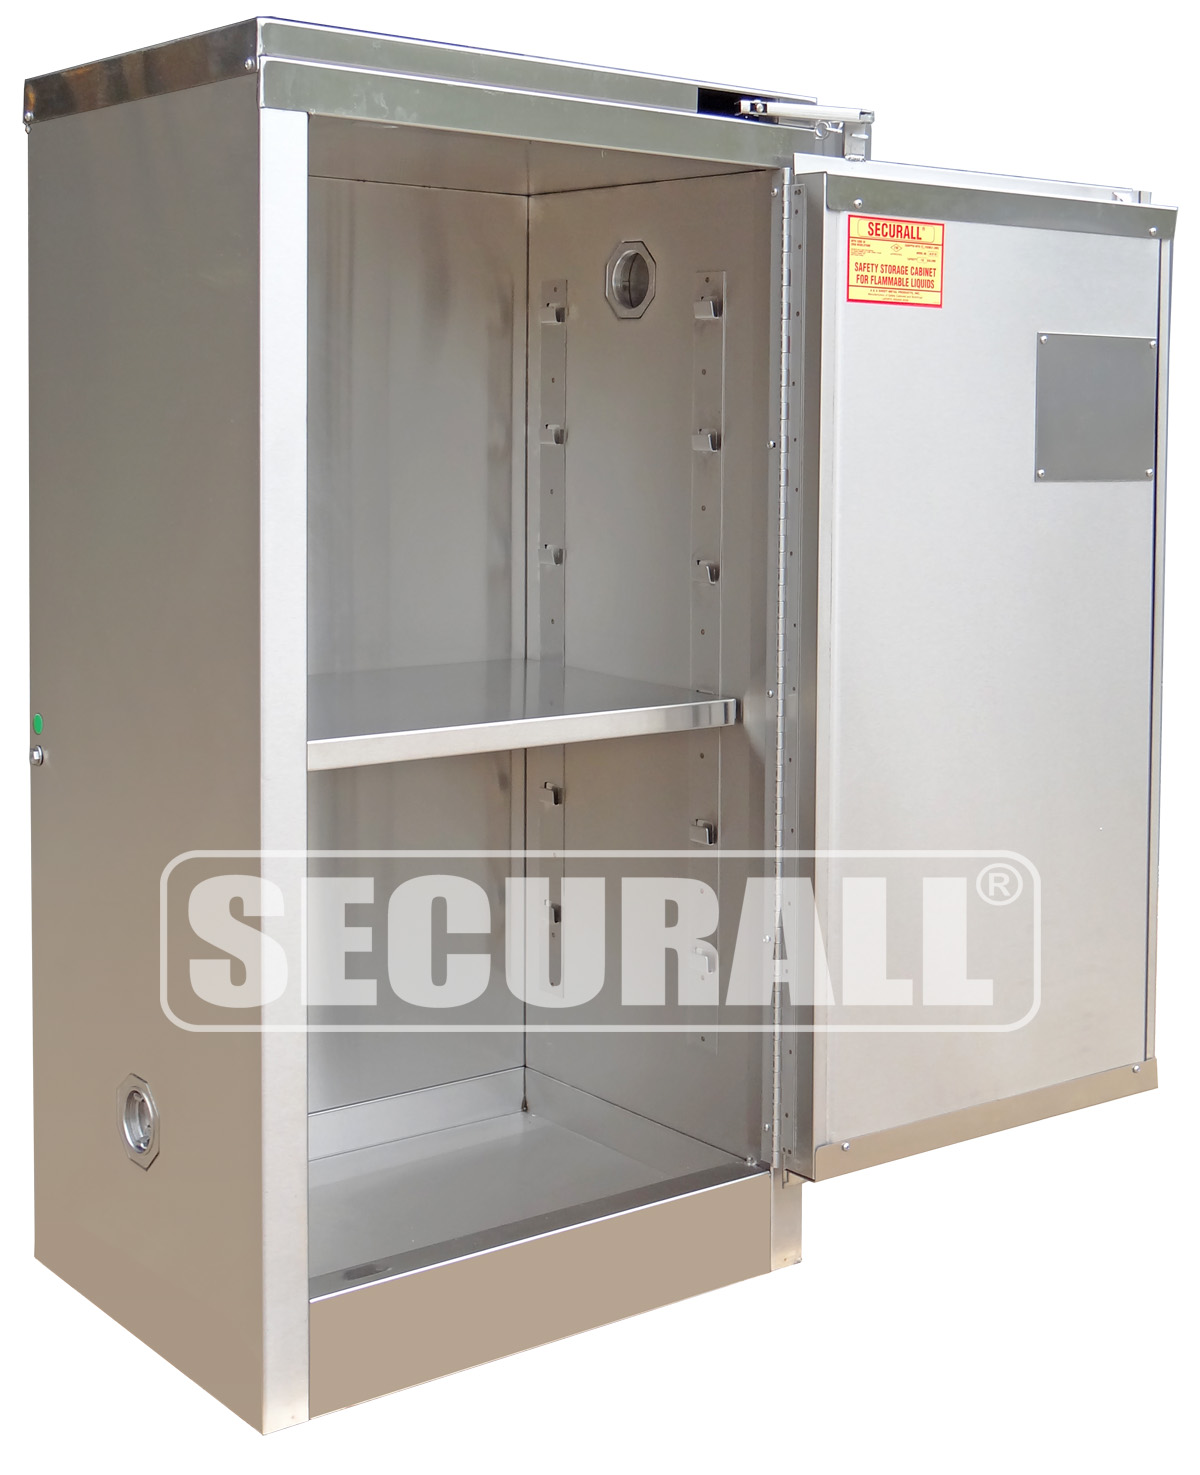 SECURALL®: Stainless Steel Storage Cabinets For Flammables And Hazardous  Materials, Stainless Steel Cabinets